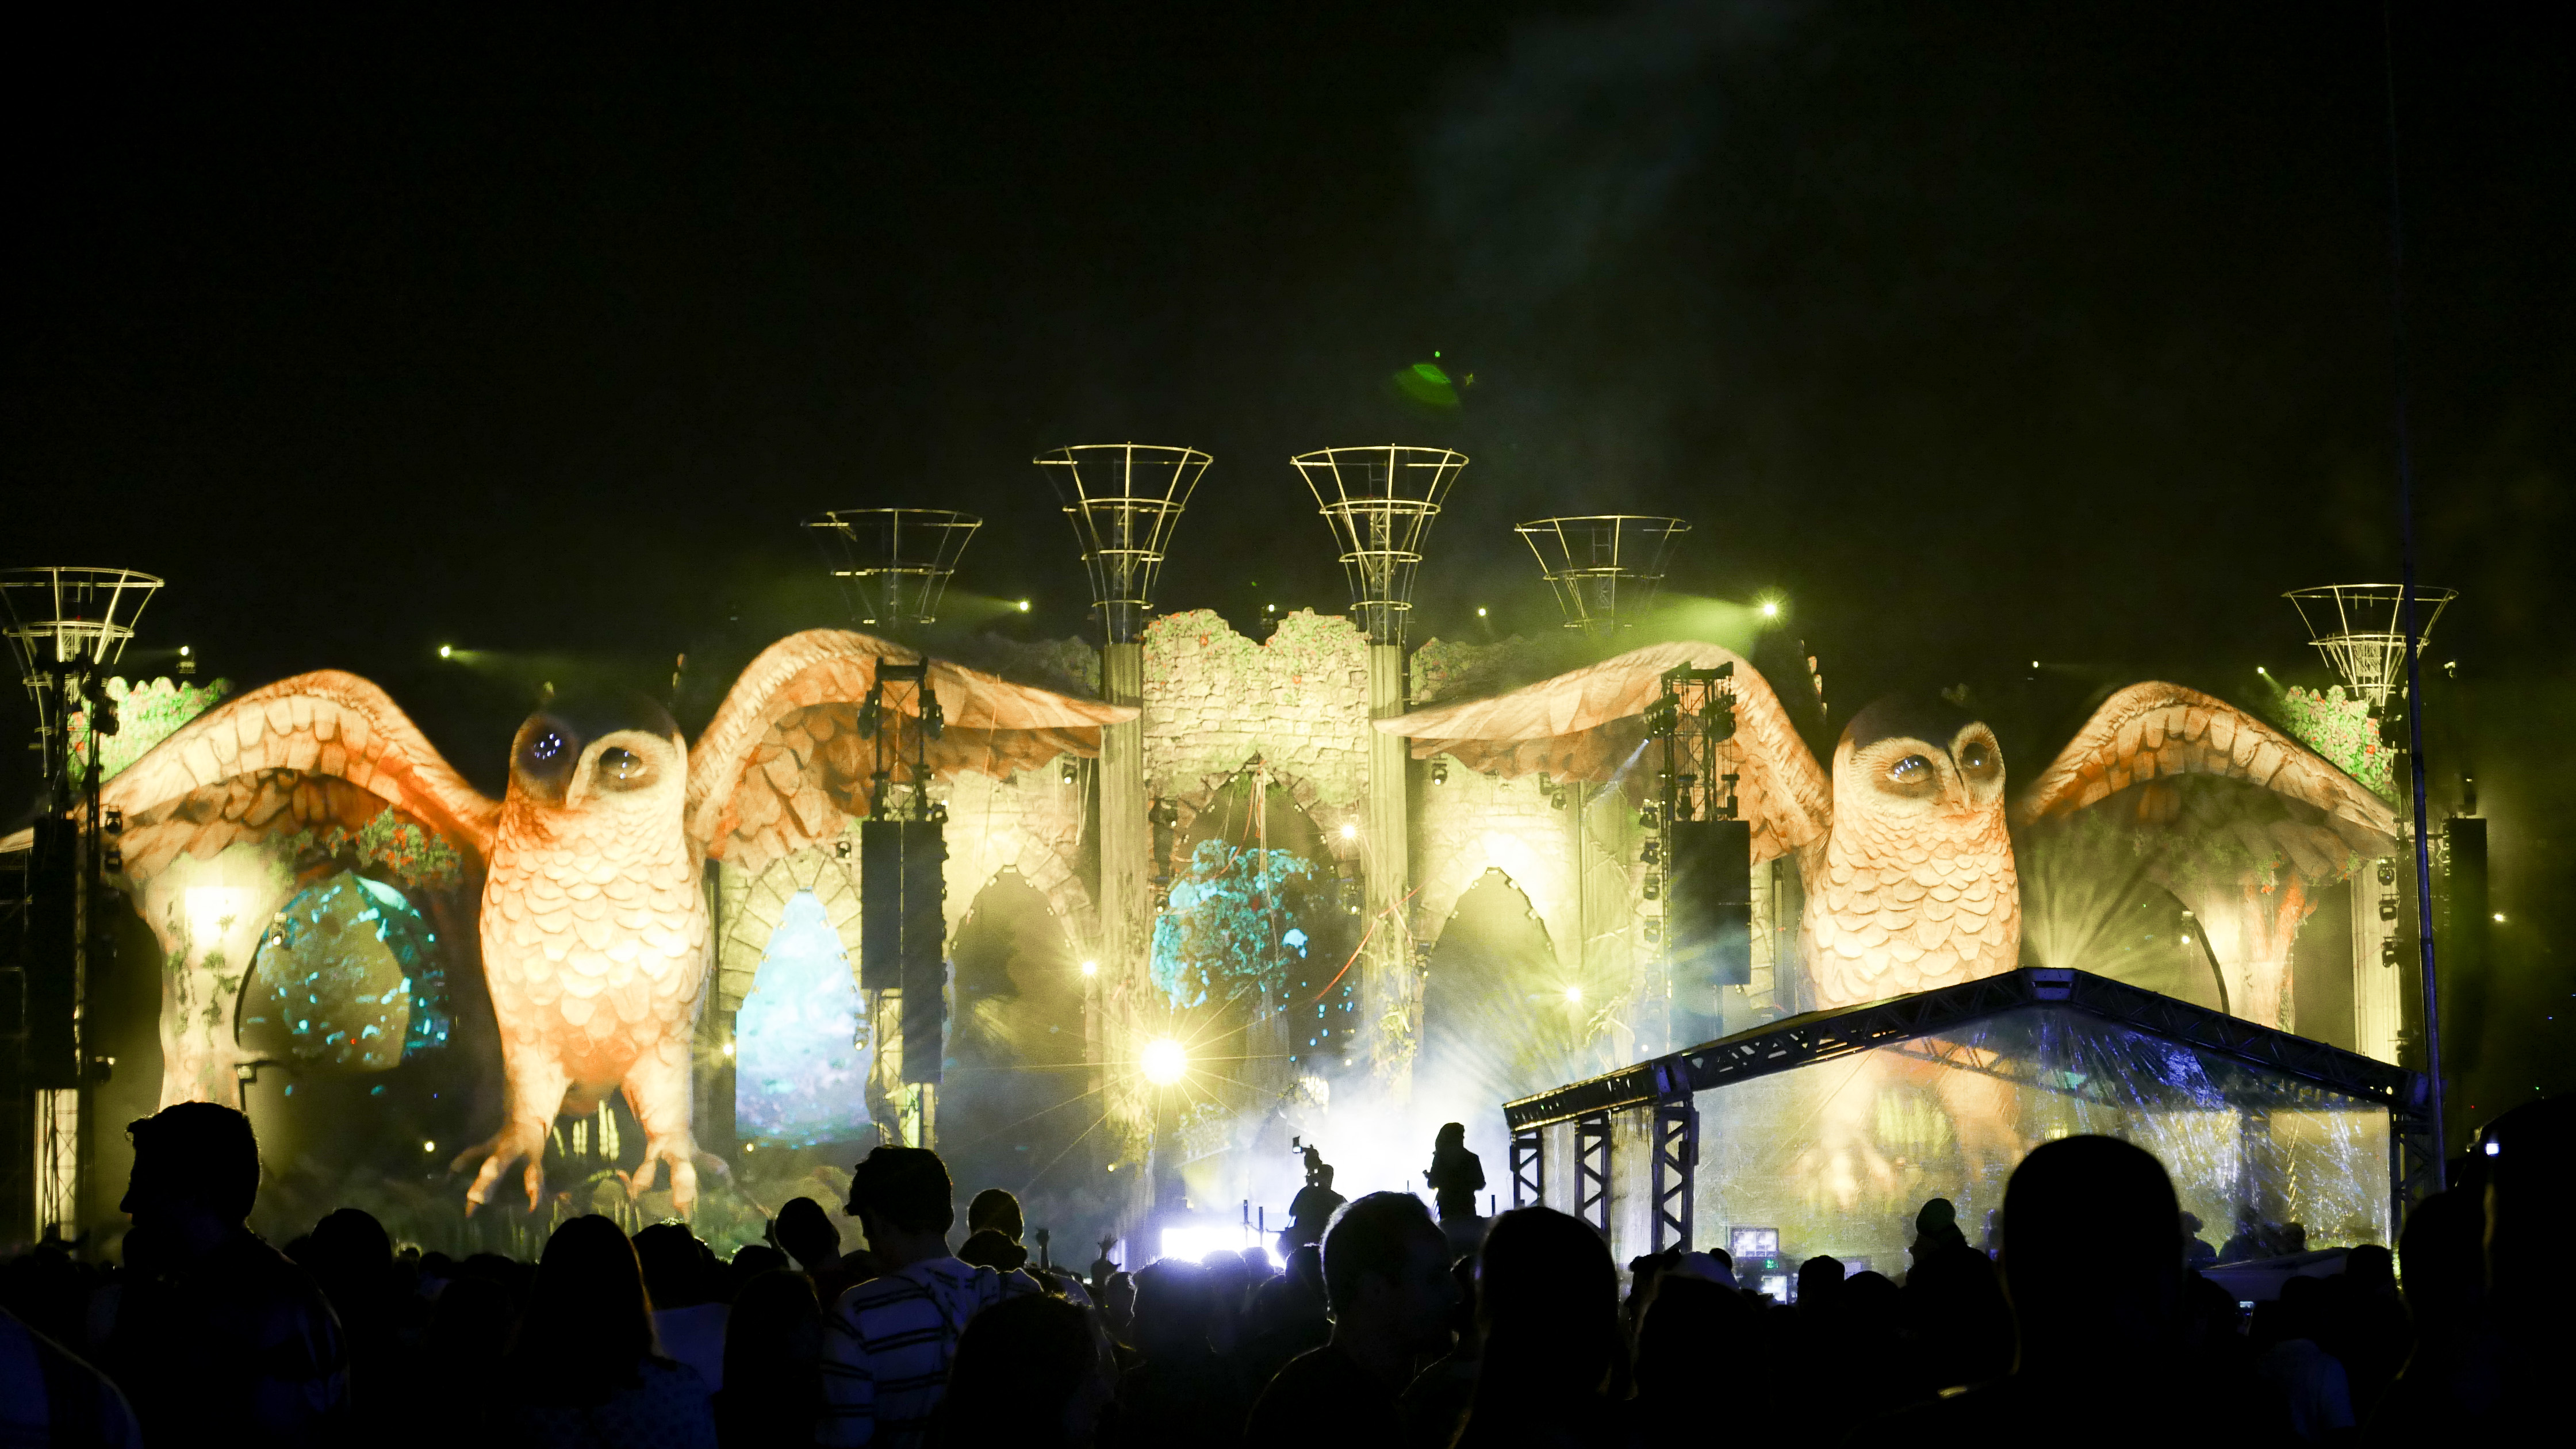 A shot from Skyfire's stage at EDC in Sao Paulo where Love in the Fire was blessed to perform on